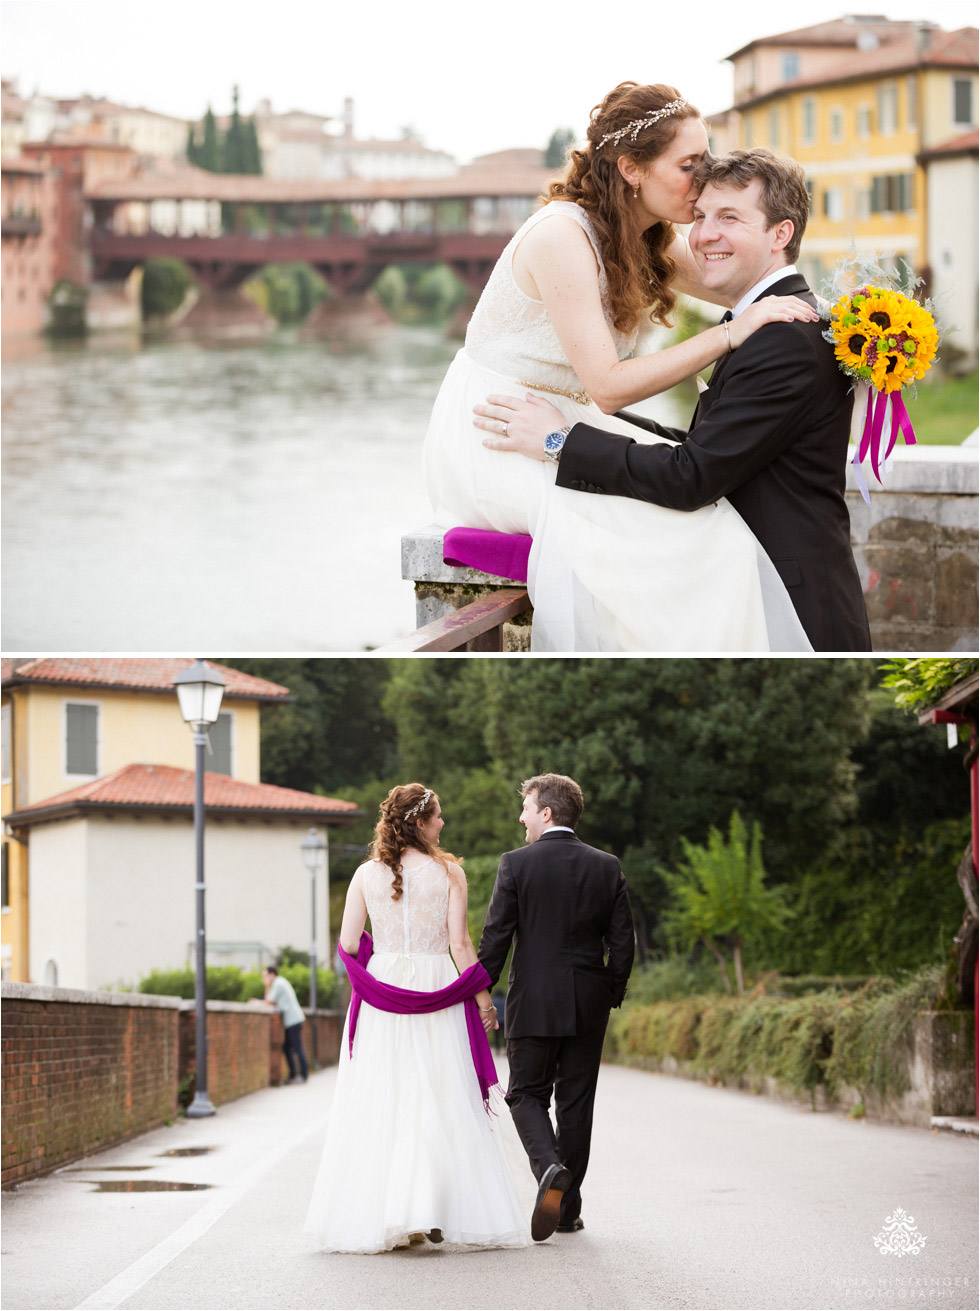 Bride and groom in front of the Ponte Vecchio in Bassano del Grappa, Italy - Blog of Nina Hintringer Photography - Wedding Photography, Wedding Reportage and Destination Weddings